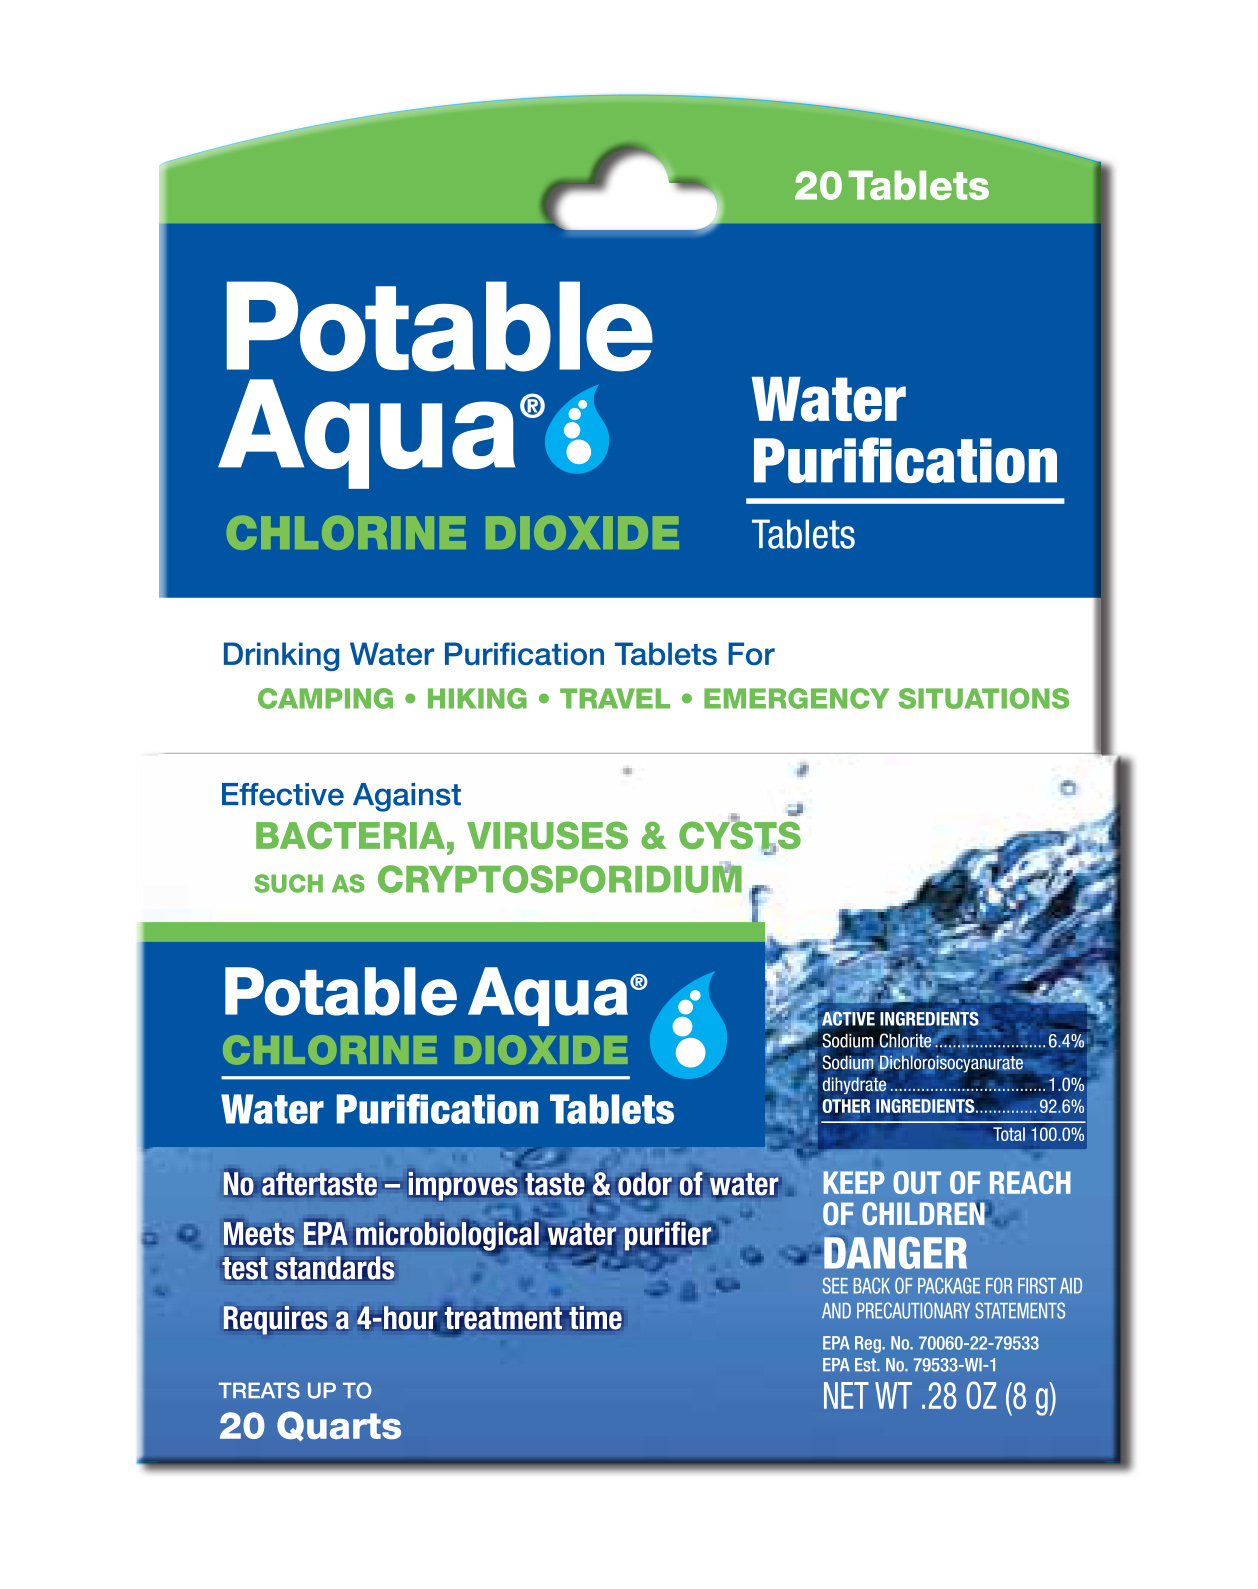 3092 - WPC Potable Aqua Chlorine Dioxide Tablets - 20 Pack